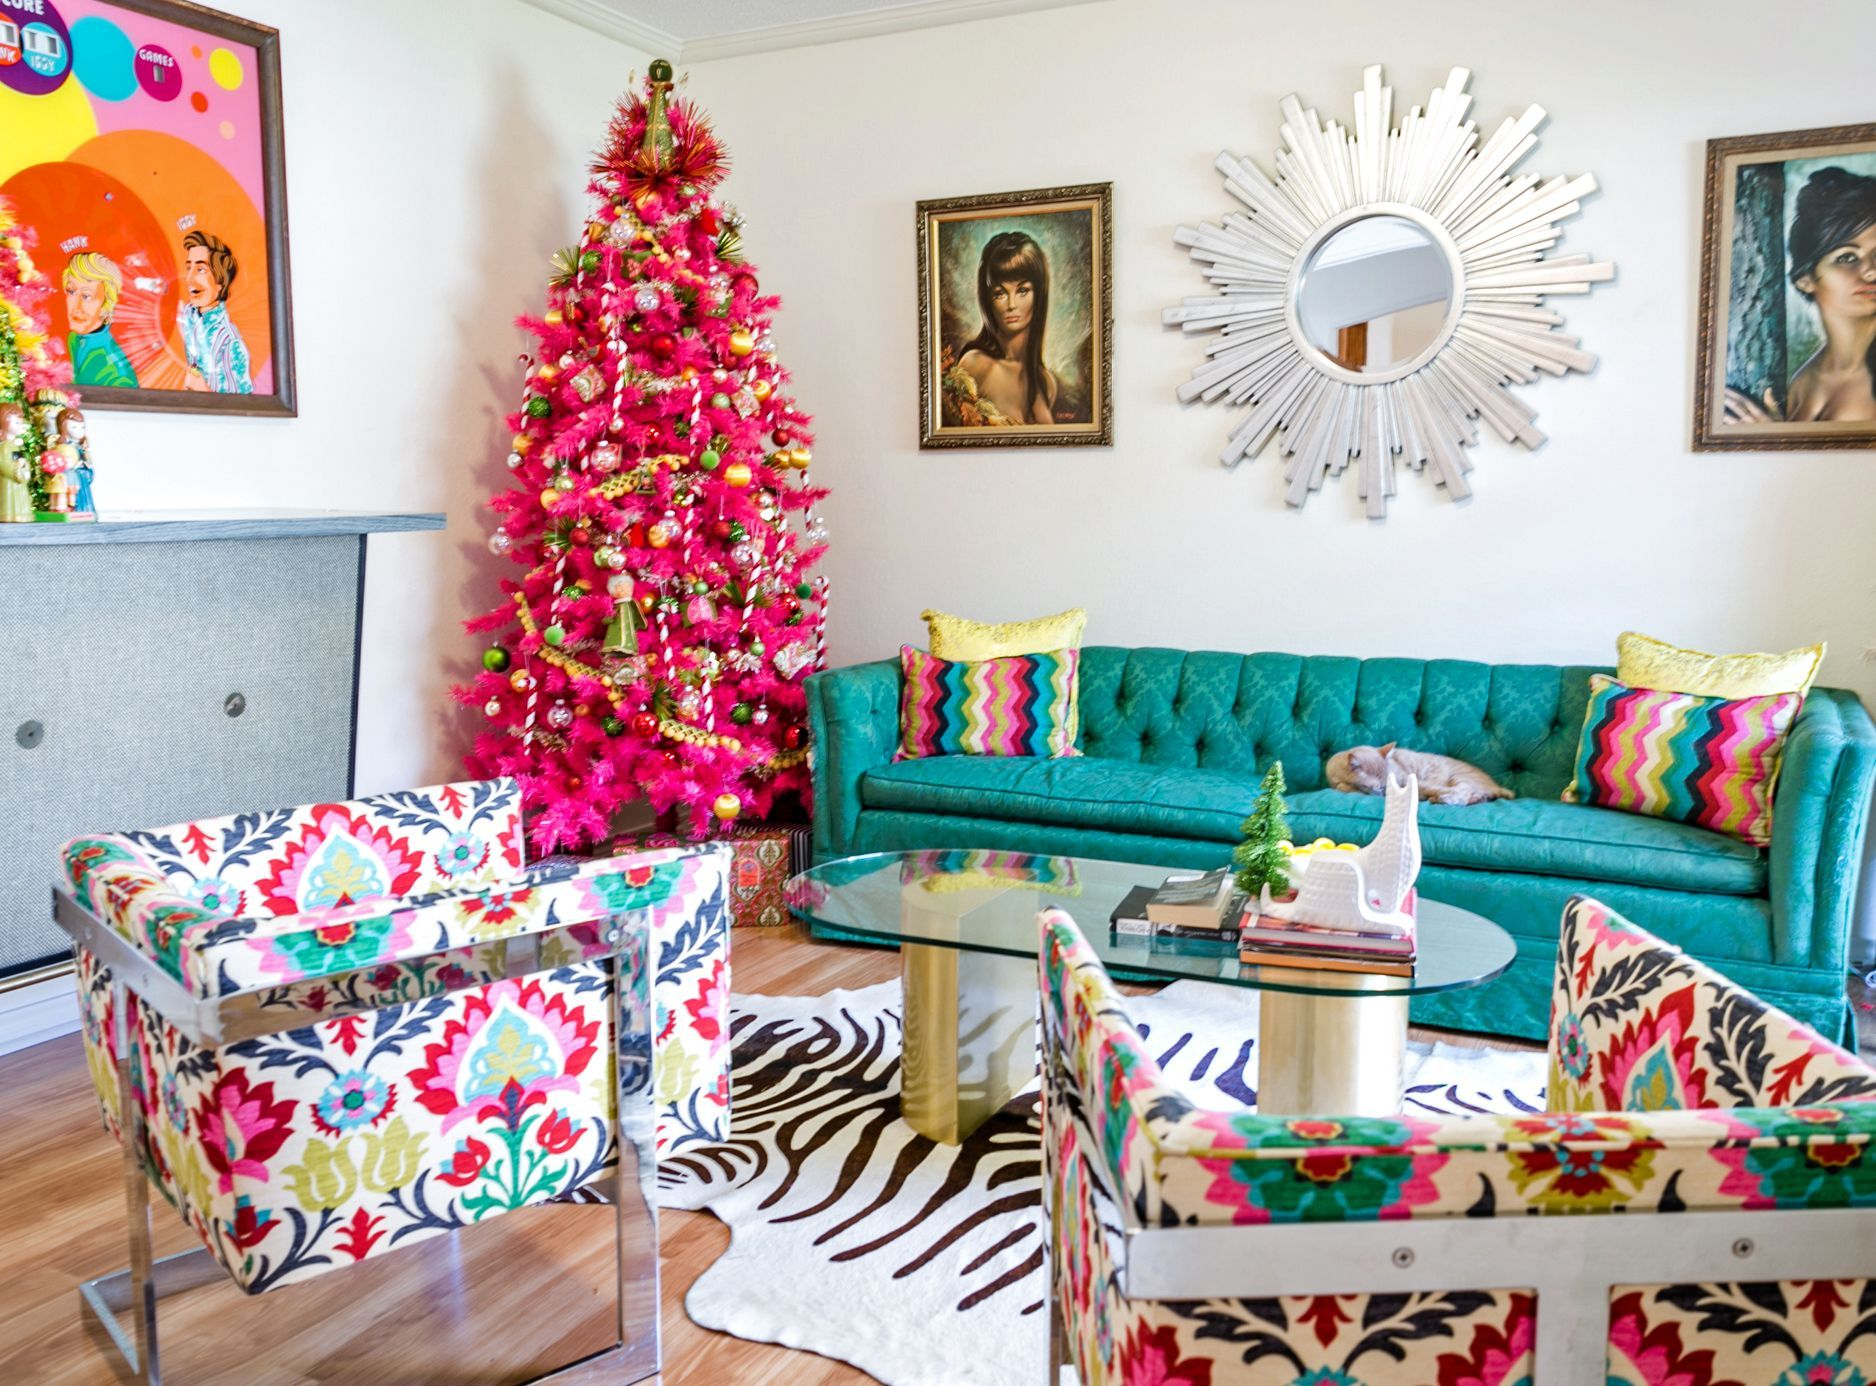 How to Make Midcentury Modern Christmas Decorations Entertaining